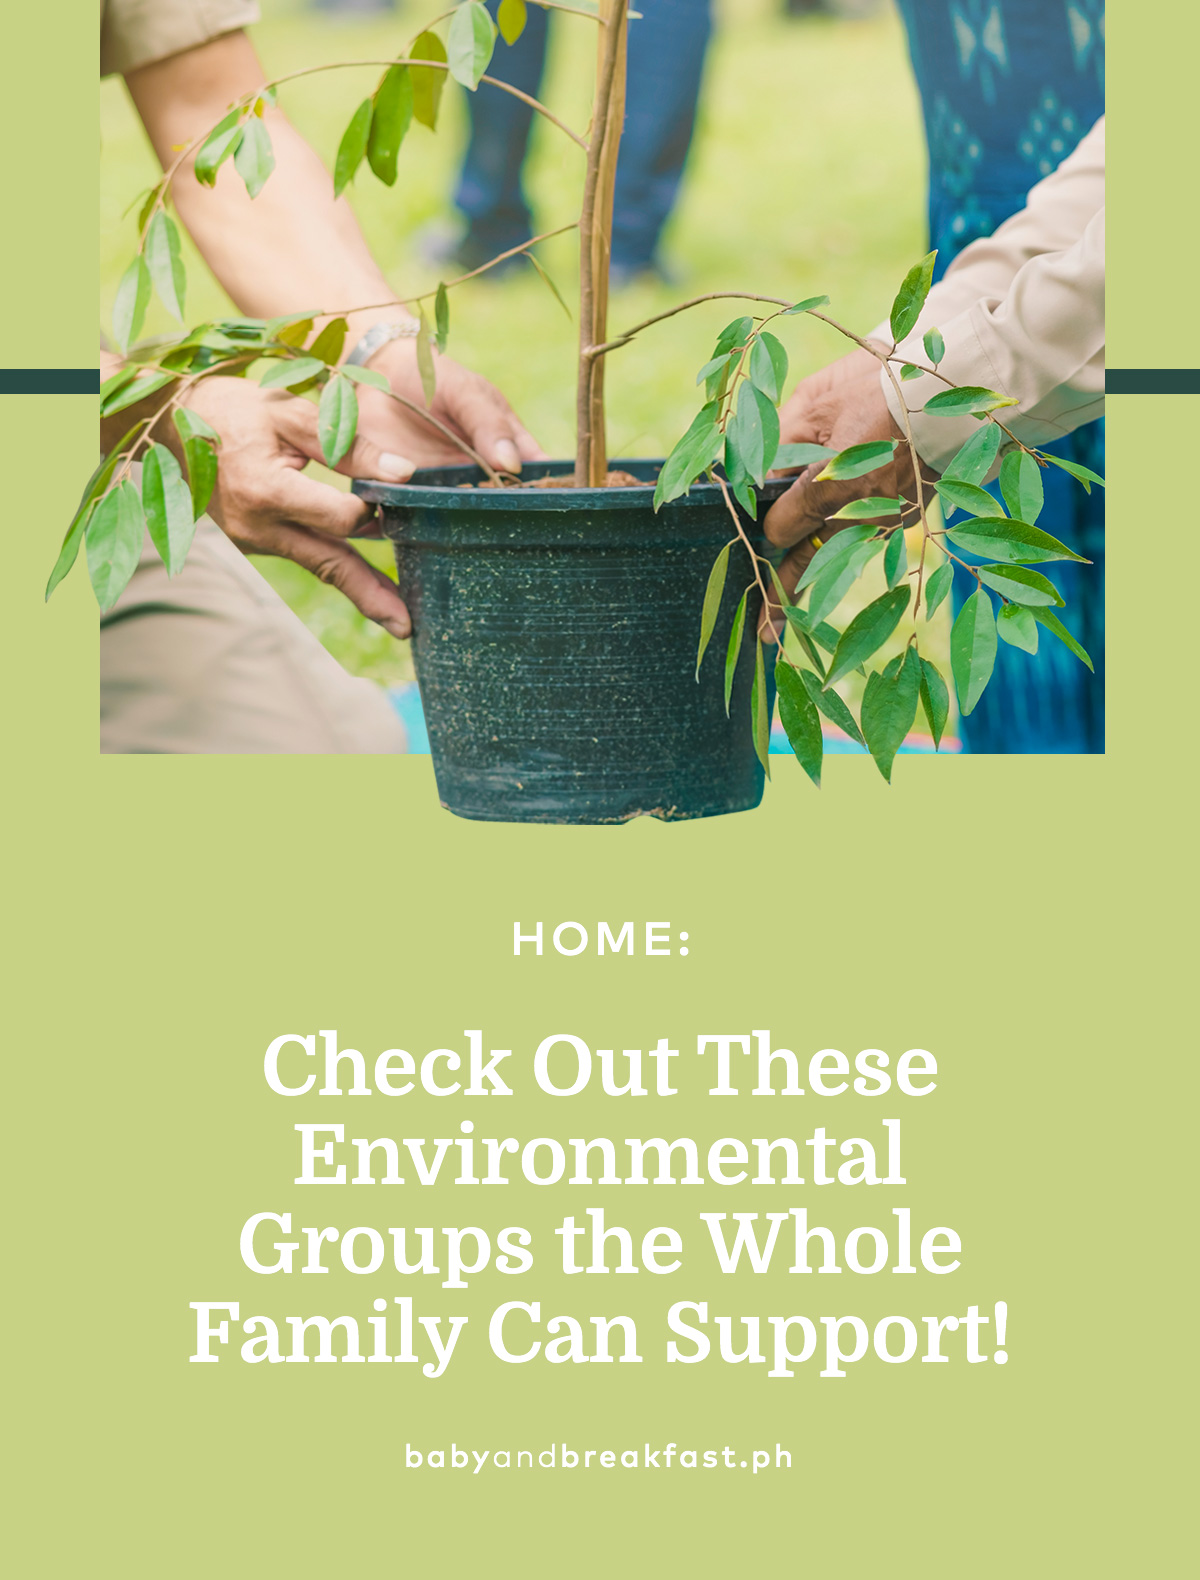 Check Out These Environmental Groups the Whole Family Can Support!